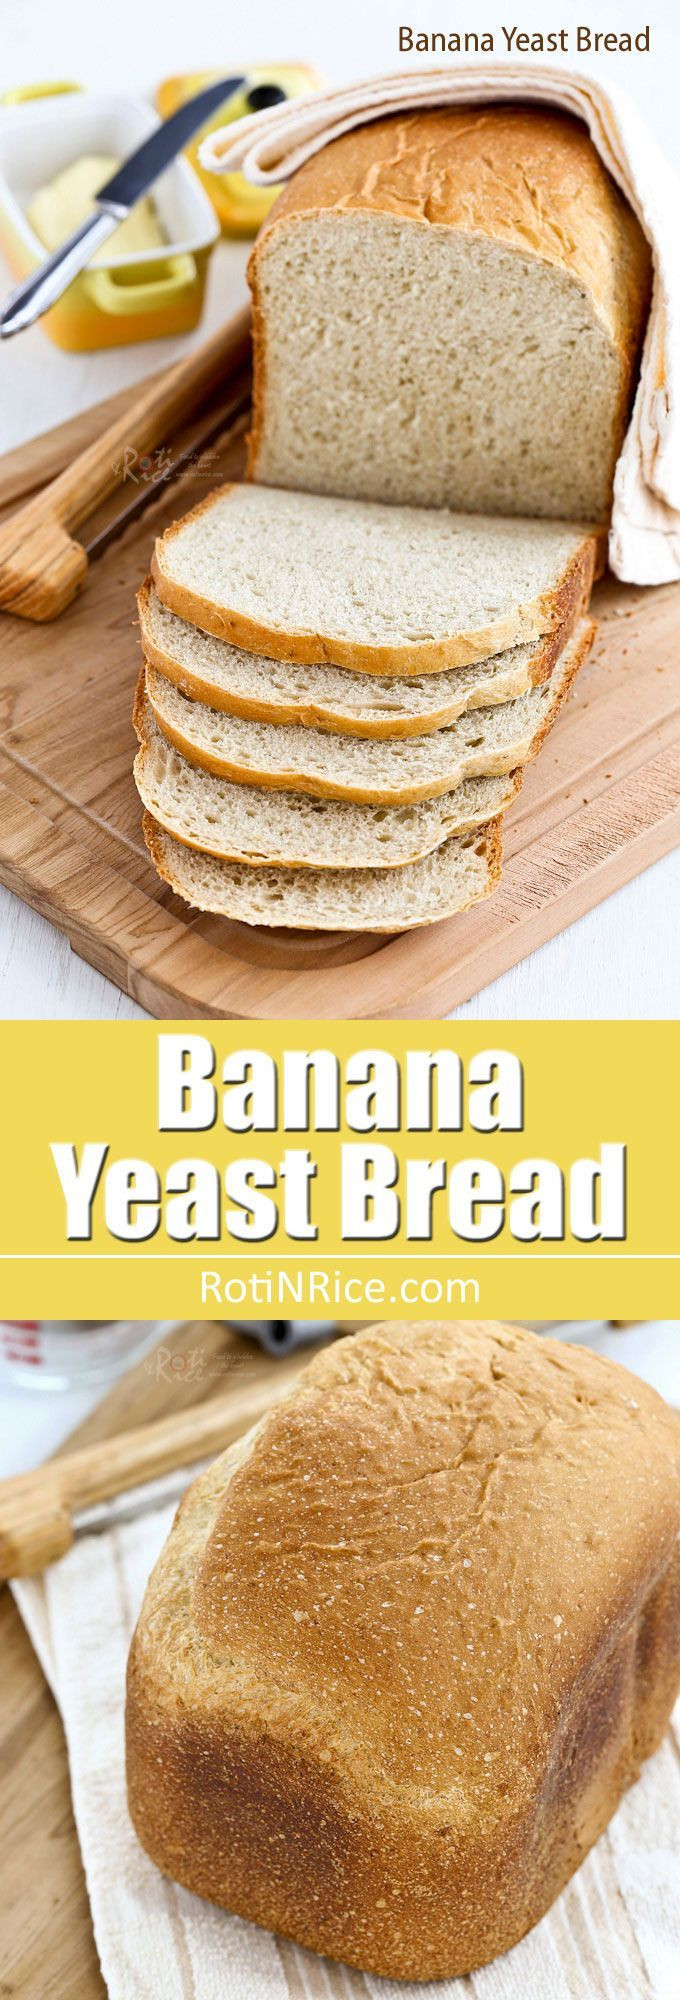 Healthy Yeast Bread Recipes  377 best images about Bread with yeast on Pinterest